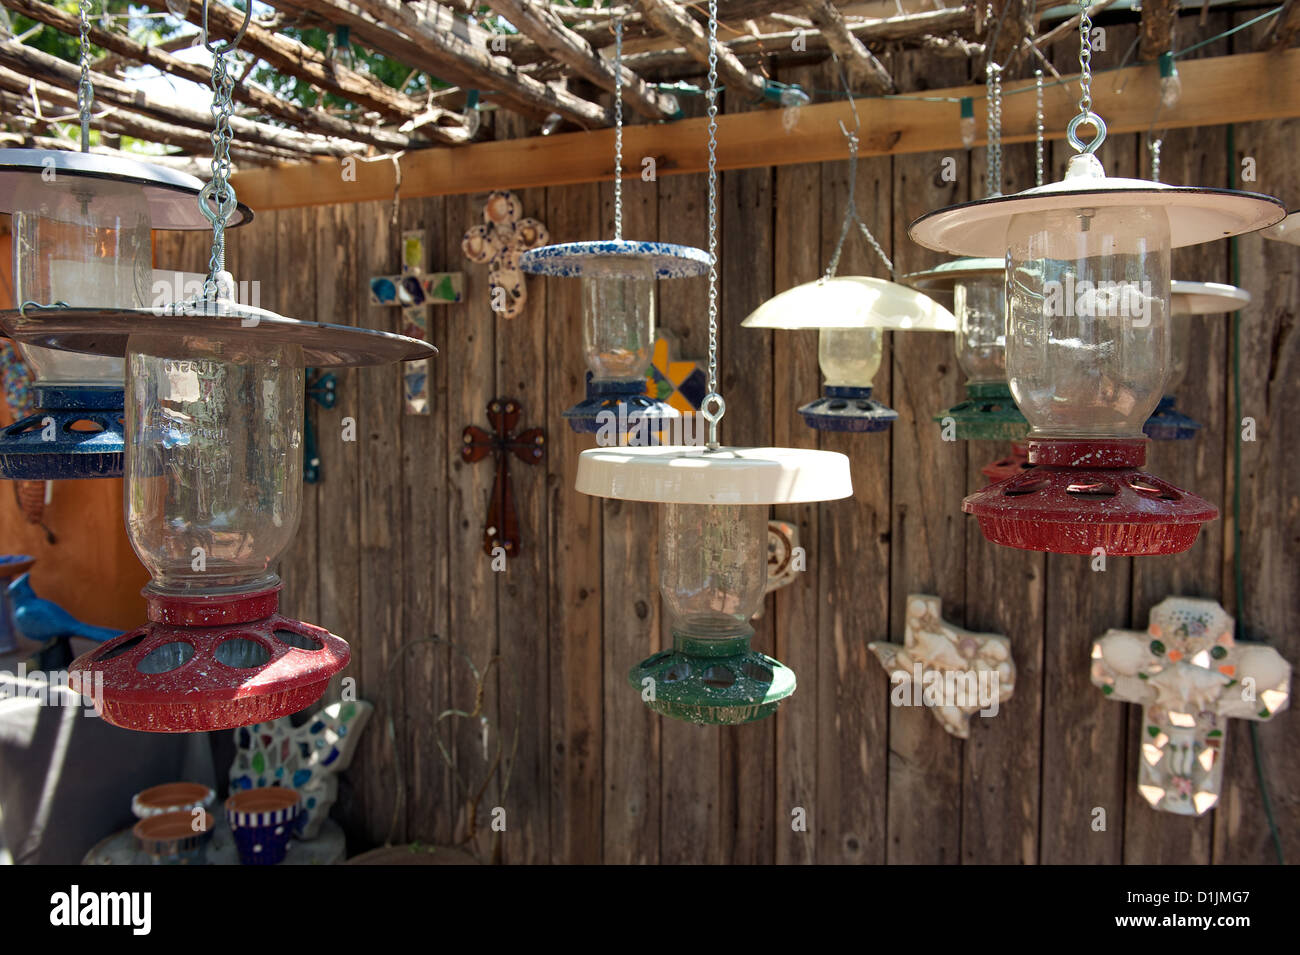 Hanging retro lamps for sale at The Old Chicken Farm Art Center, San Angelo, Texas, US - Stock Image